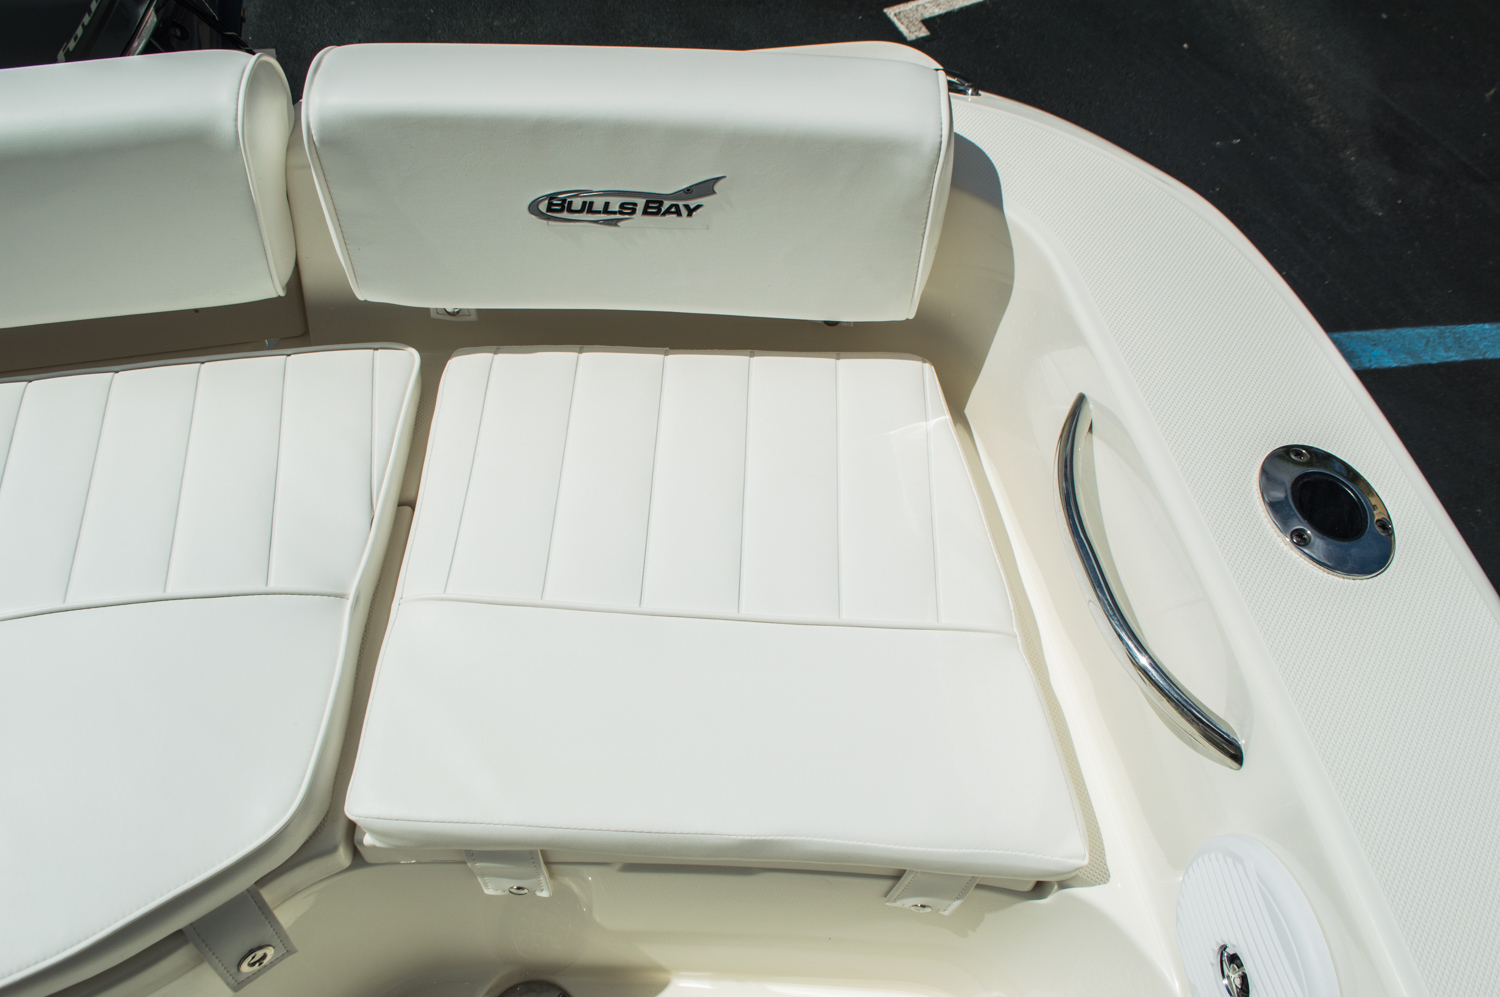 Thumbnail 32 for New 2016 Bulls Bay 200 CC Center Console boat for sale in Vero Beach, FL